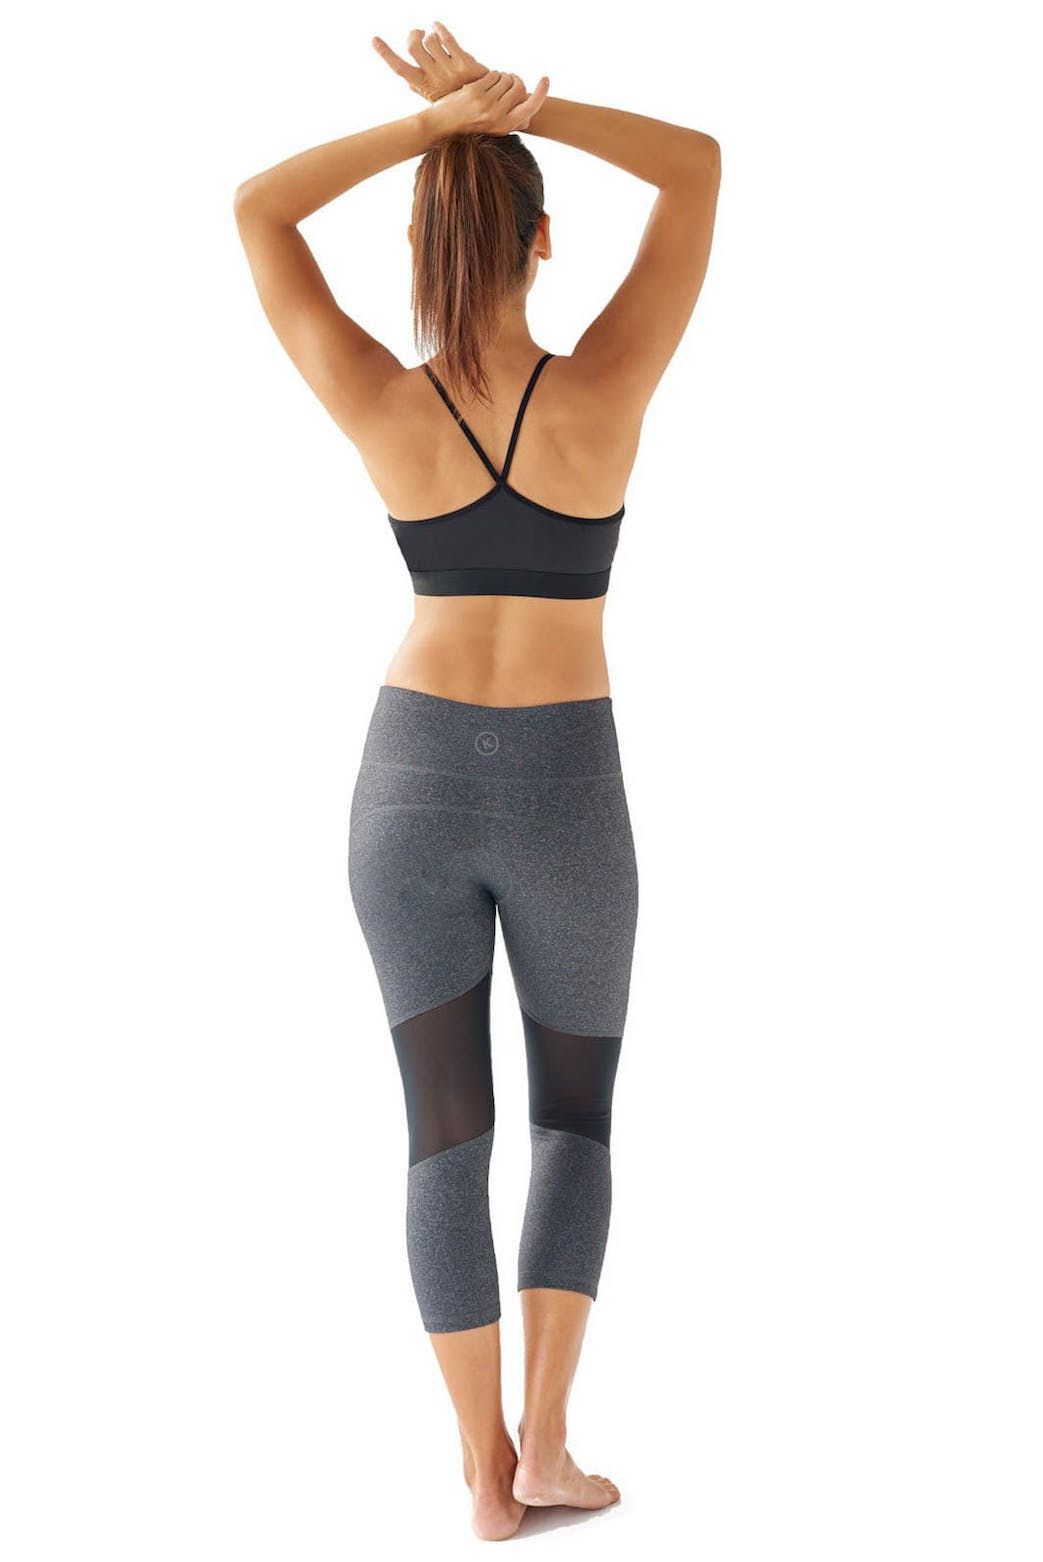 78667d22d57 The Best Workout Leggings for Going Commando - Racked